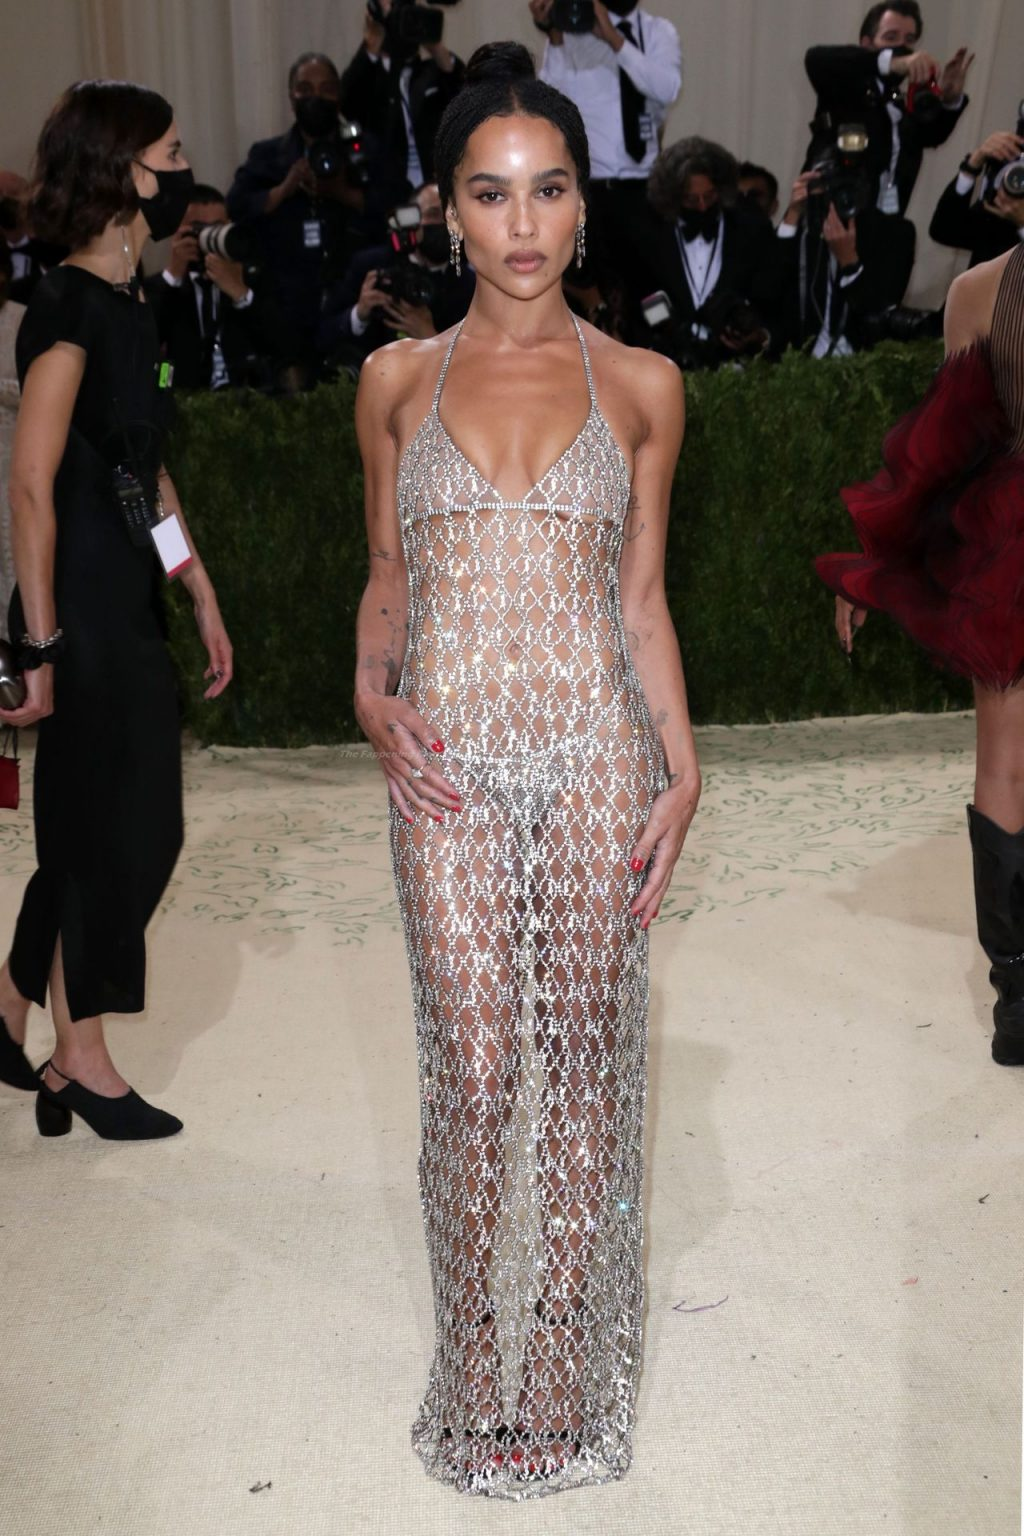 Zoe Kravitz Flaunts Her Ass at the 2021 Met Gala in NYC (48 Photos)